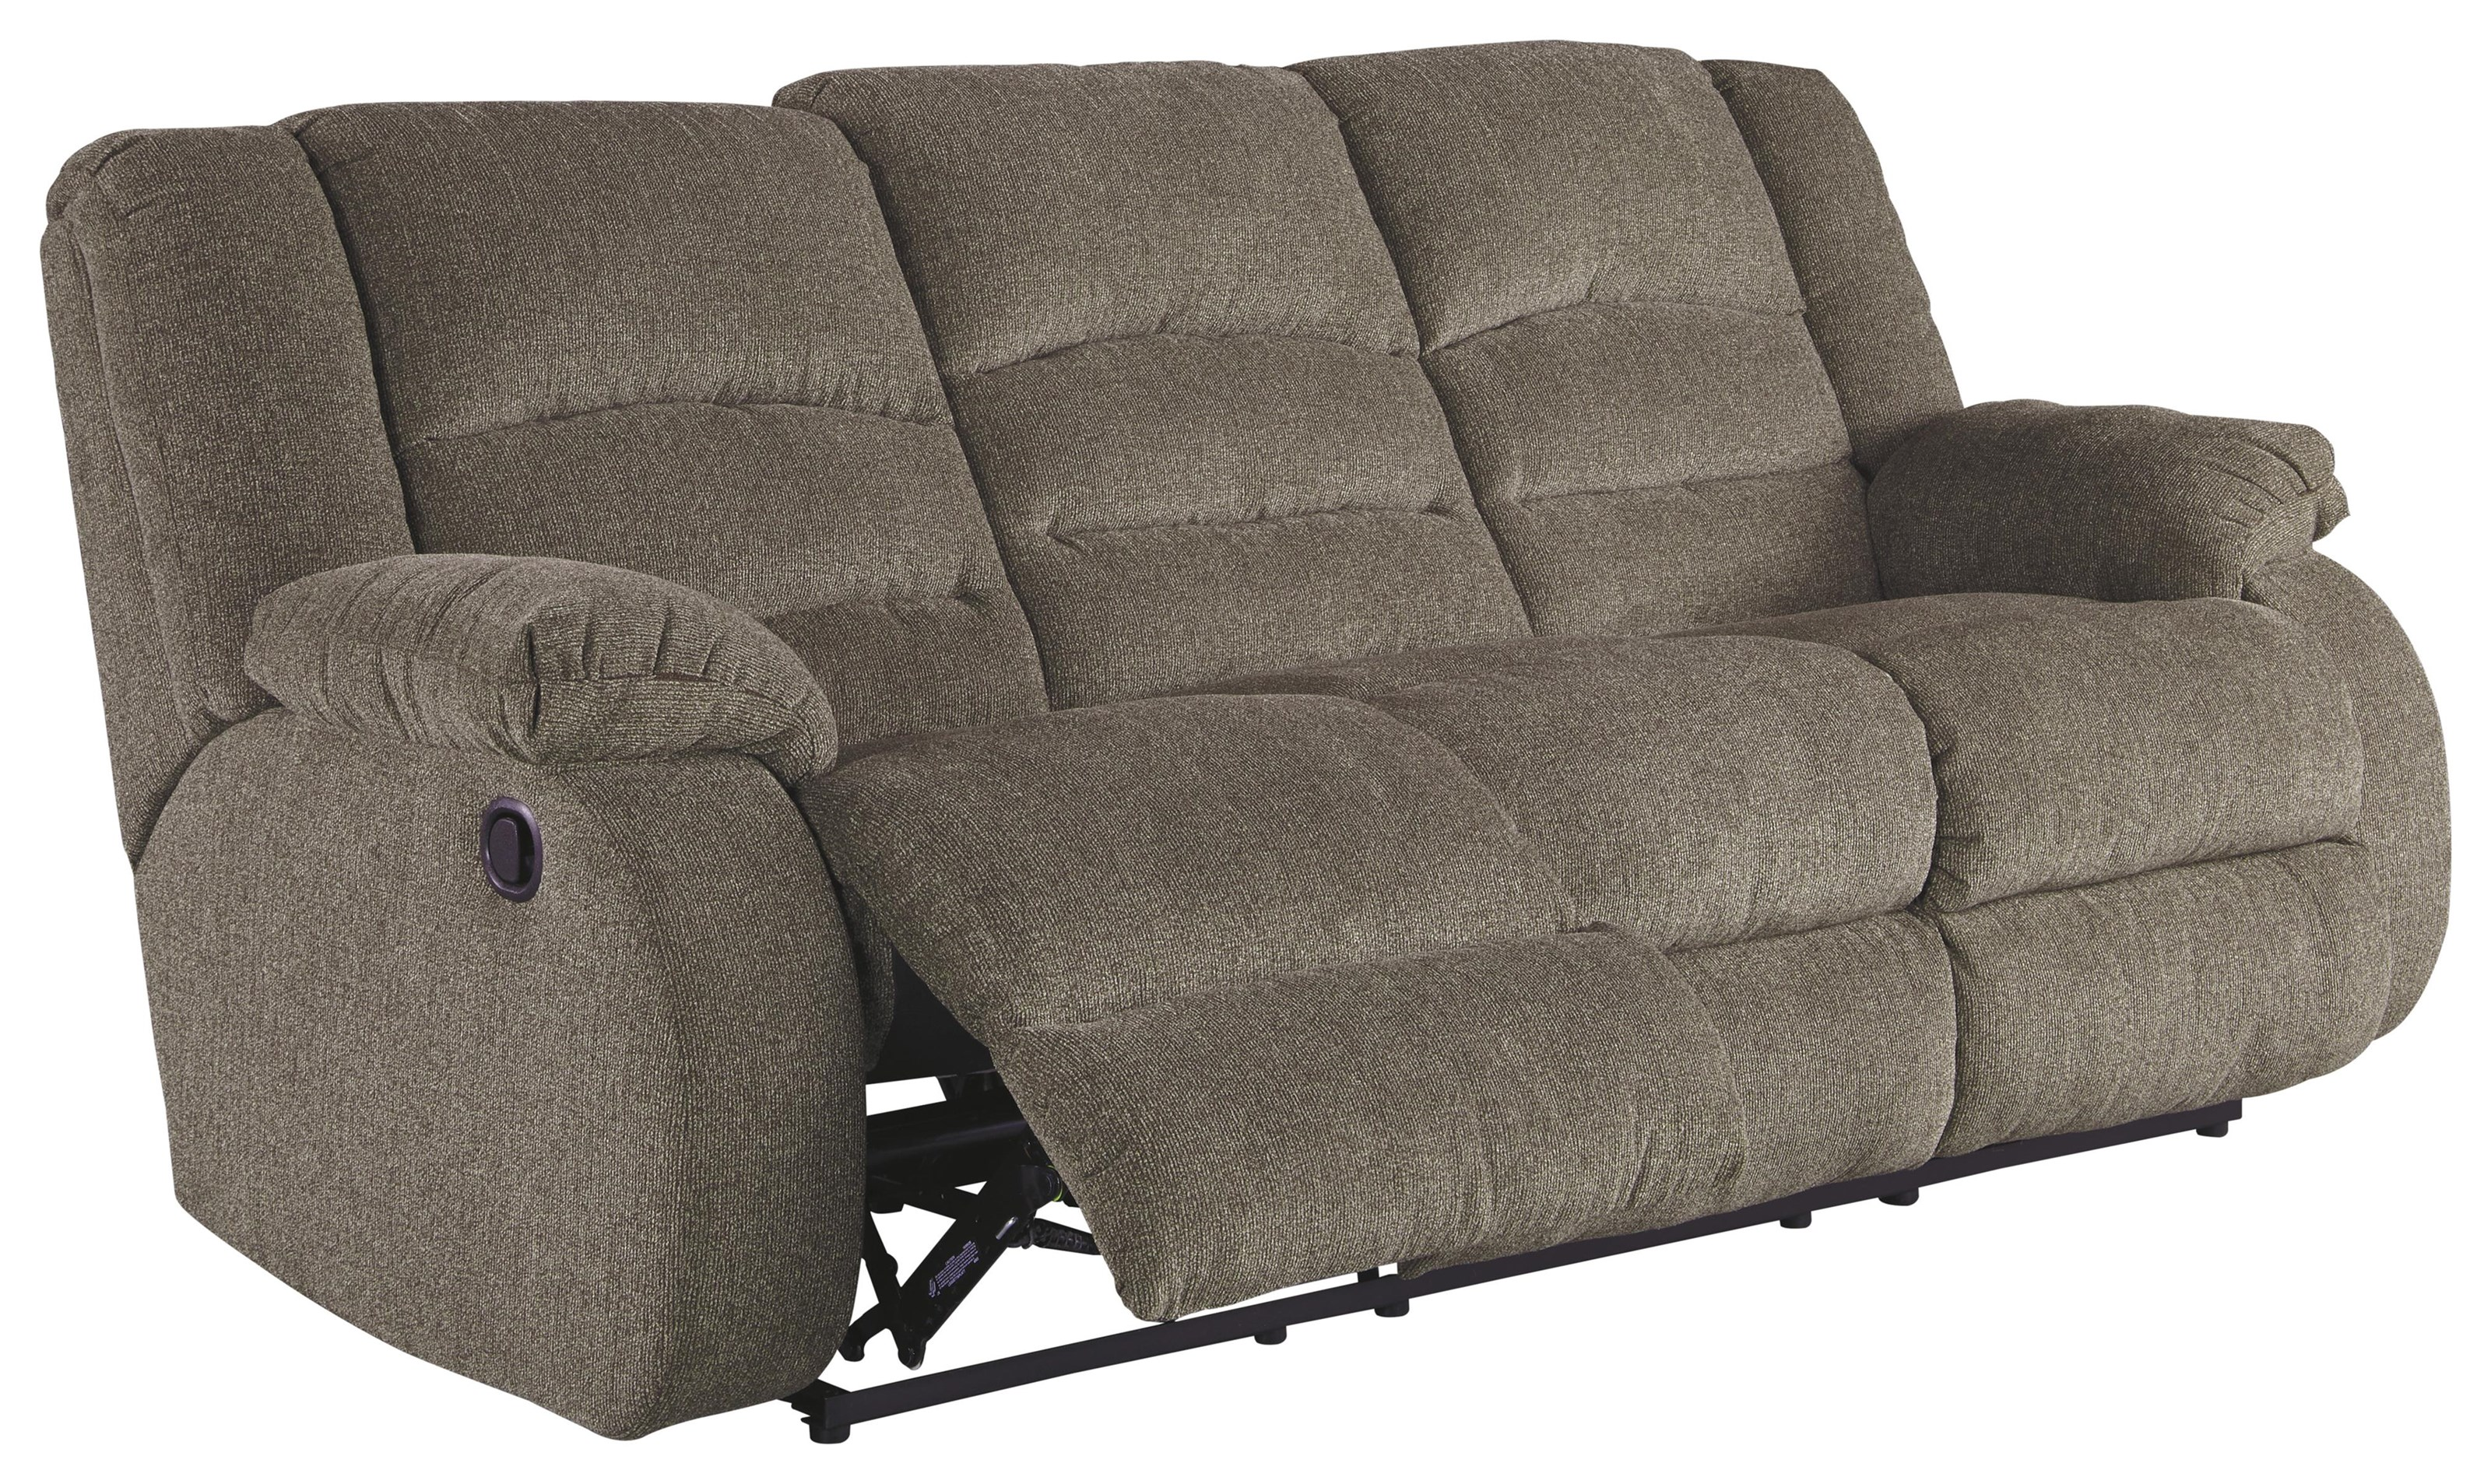 Signature Design By Ashley Nason 15804 88 Reclining Sofa Furniture And Appliancemart Reclining Sofas